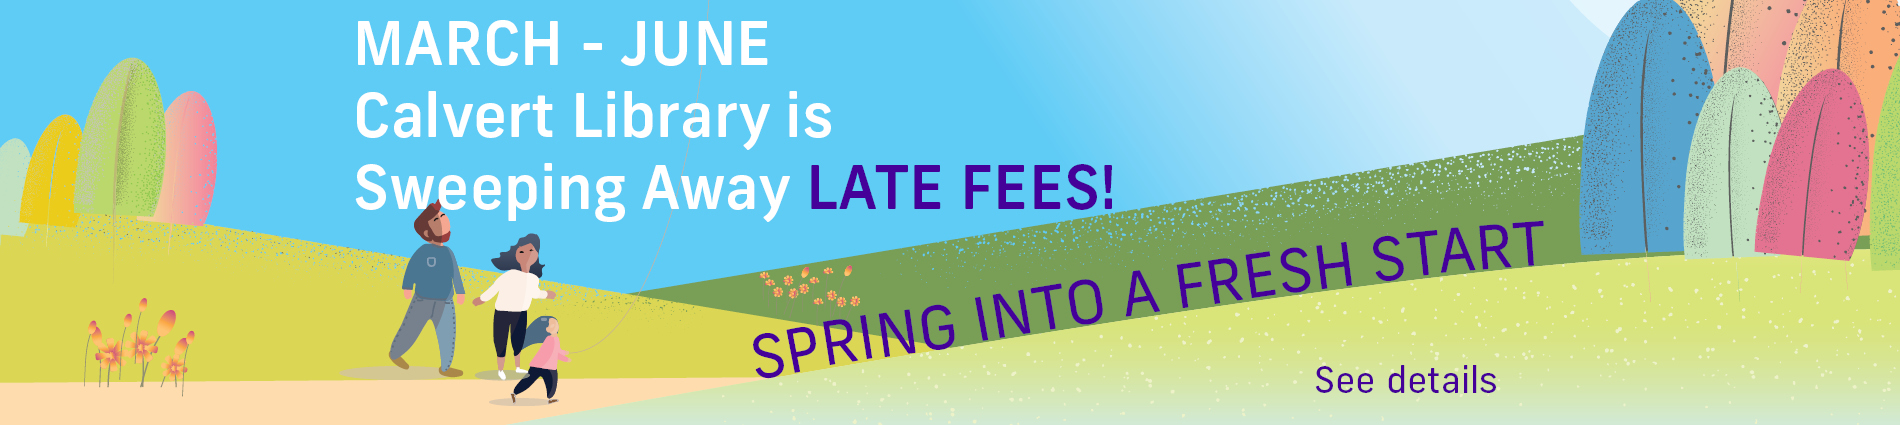 May - June Calvert Library is sweeping away late fees!